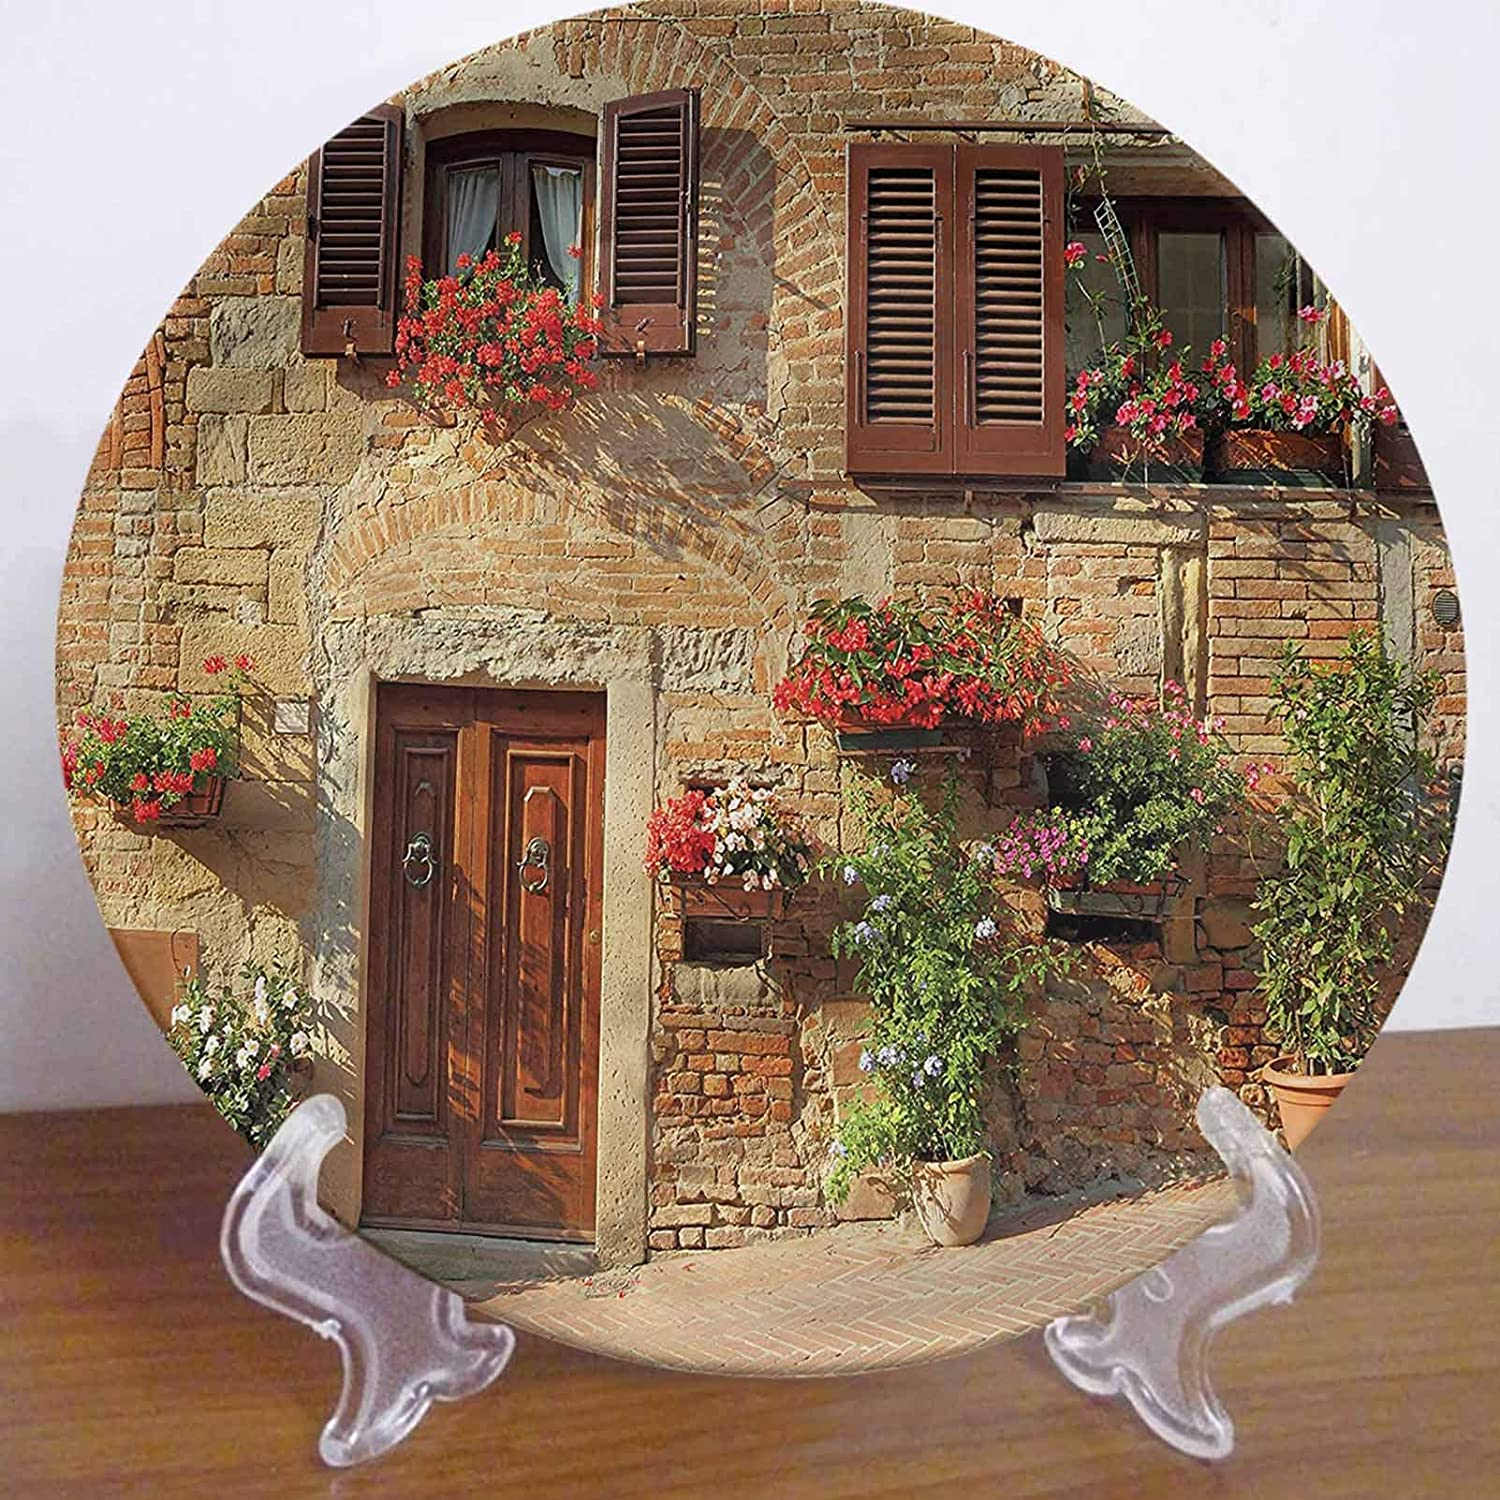 LCGGDB 10 Inch Tuscan Pattern Ceramic Hanging Decorative Plate,Mediterranean Architecture Tableware Plate Ceramic Ornament for Home&Office Wall Decors Family Sentiment